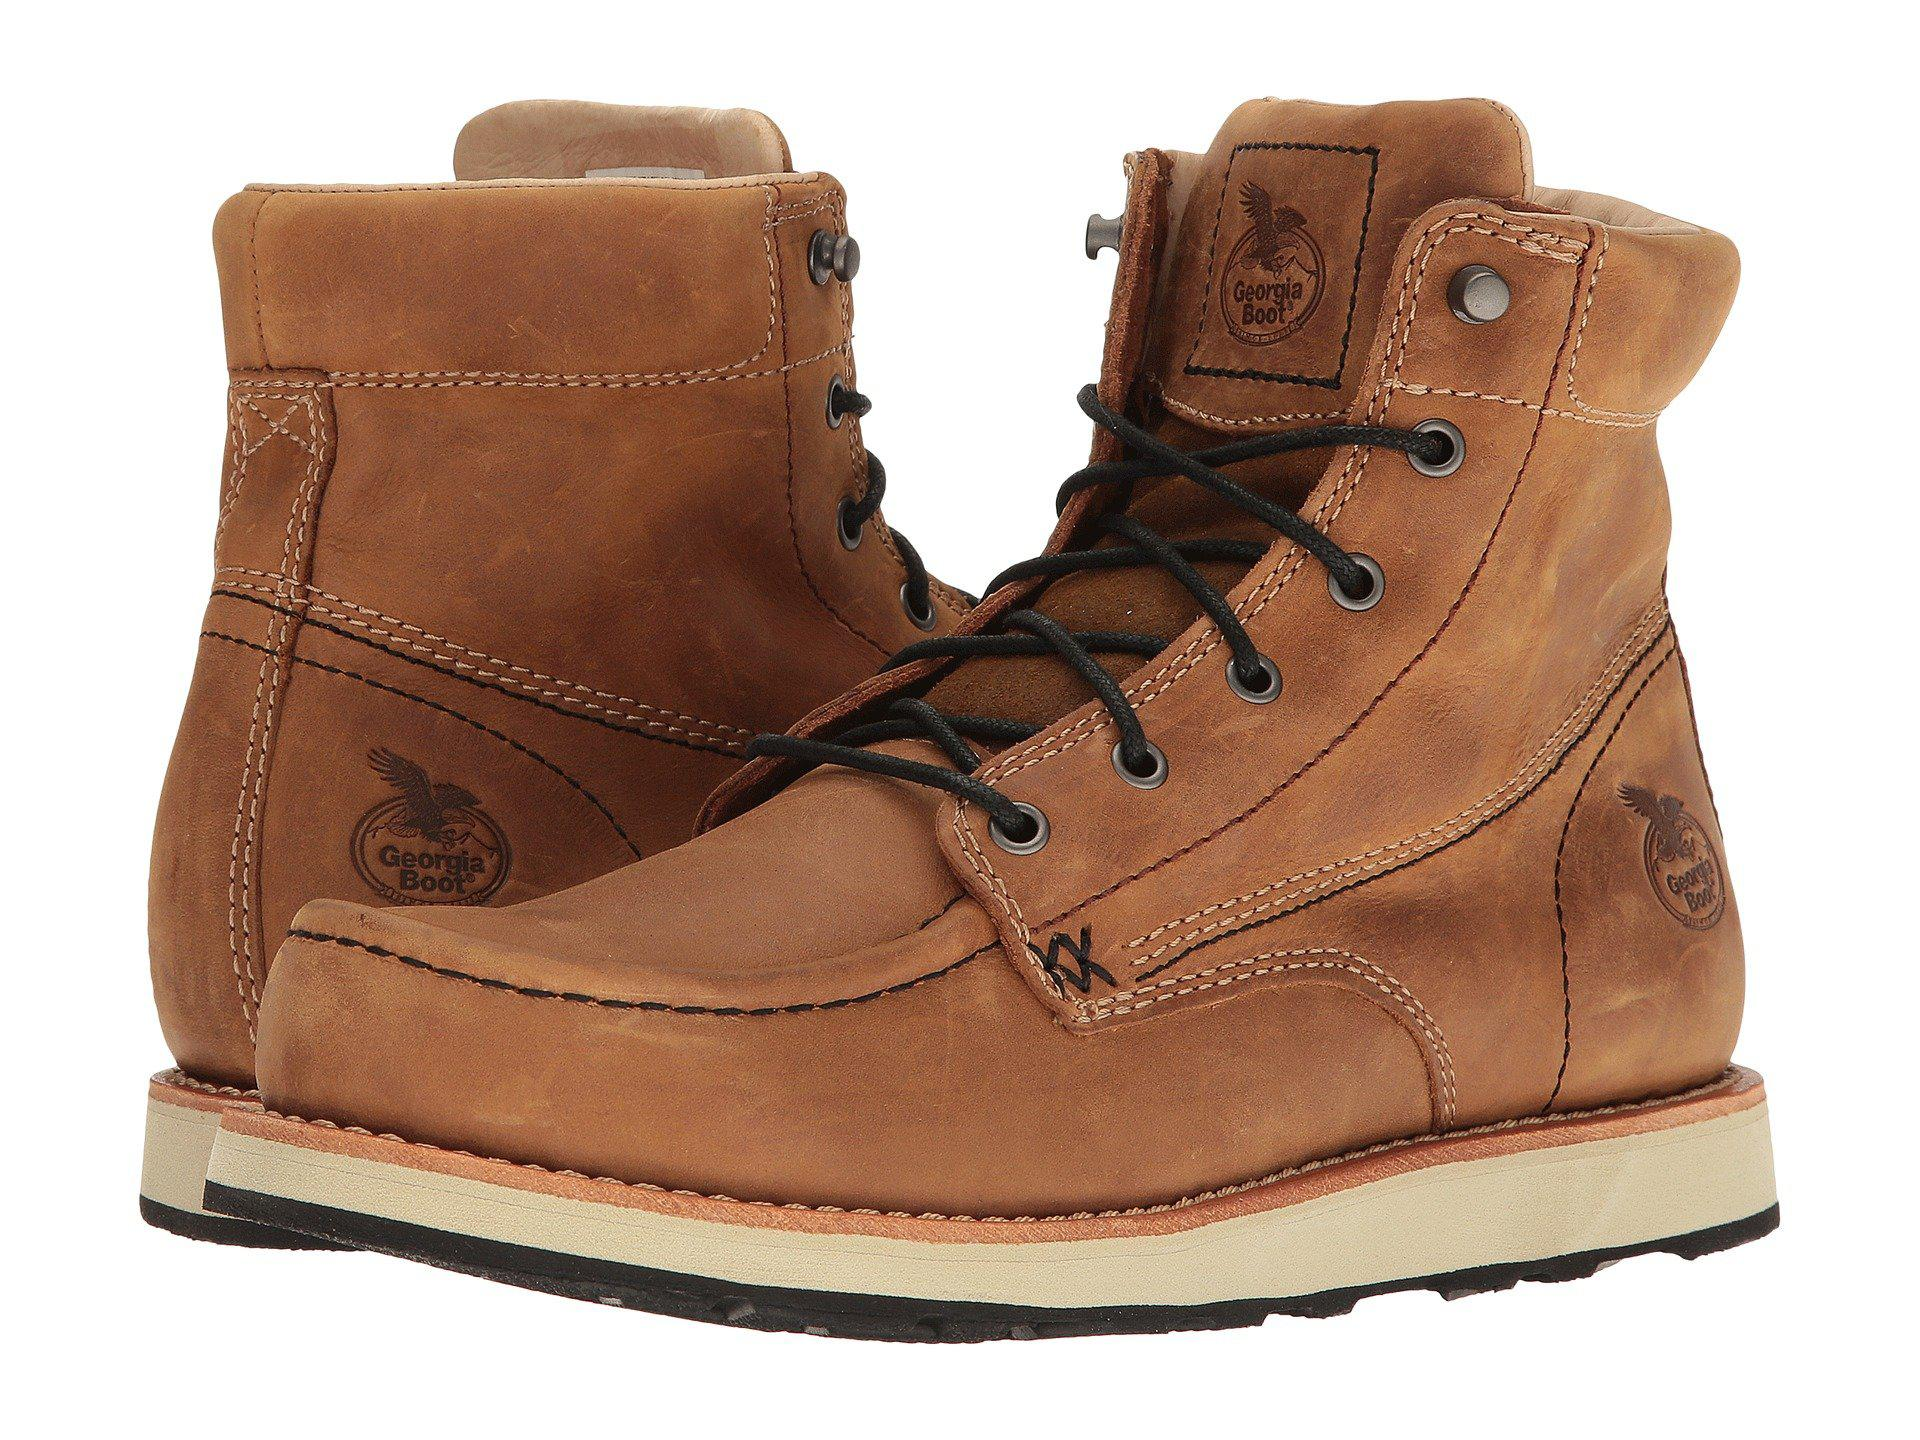 9c8d73590313 Lyst - Georgia Boot Small Batch 6 Moc Toe Wedge (brown) Men s Work ...